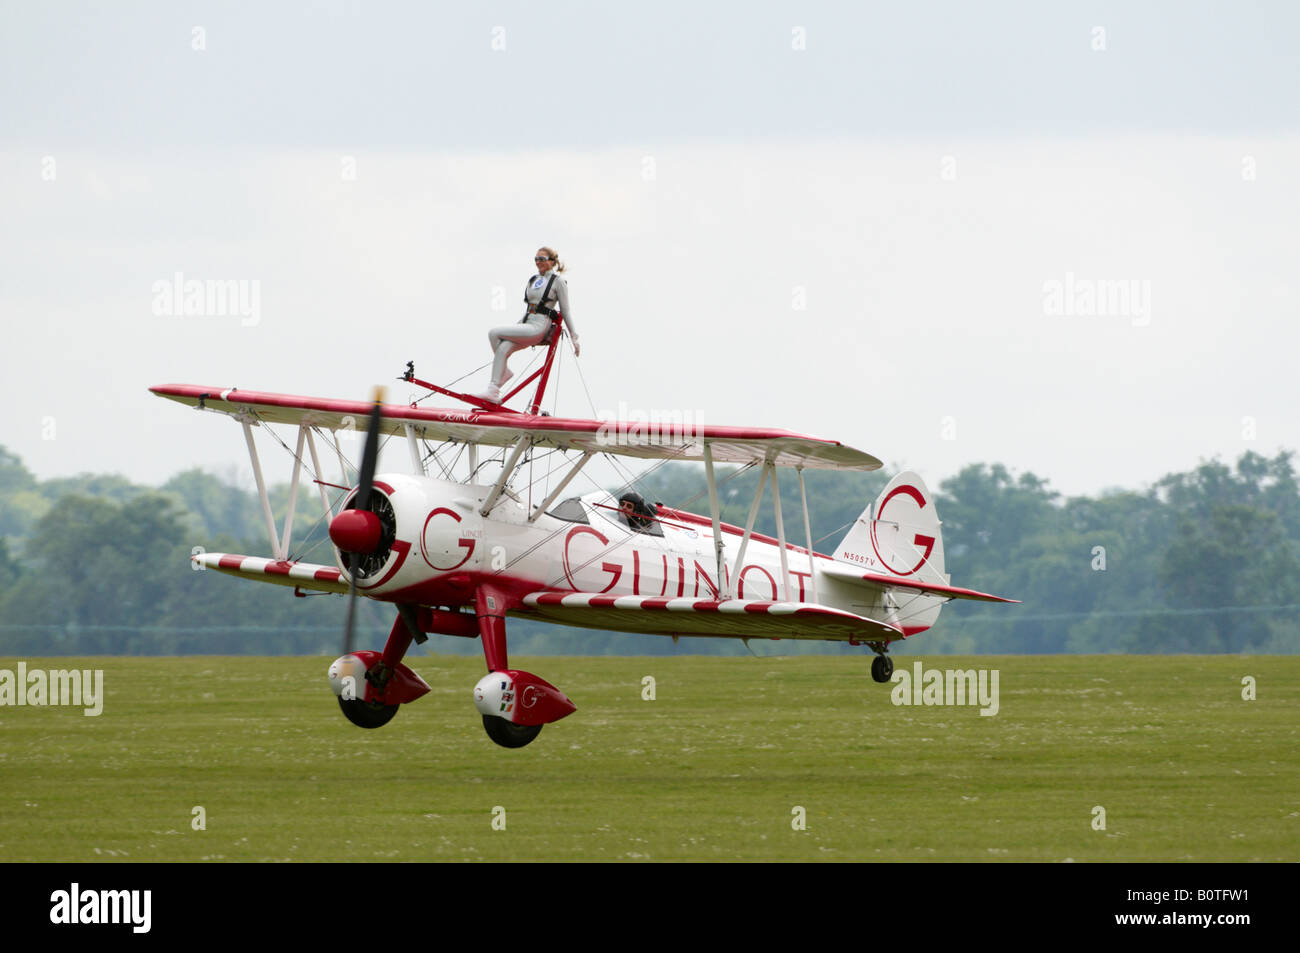 Boeing Stearman Team Guinot Wingwalking Blue Peter Duxford Air Show 2008 Zoe Salmon Stock Photo